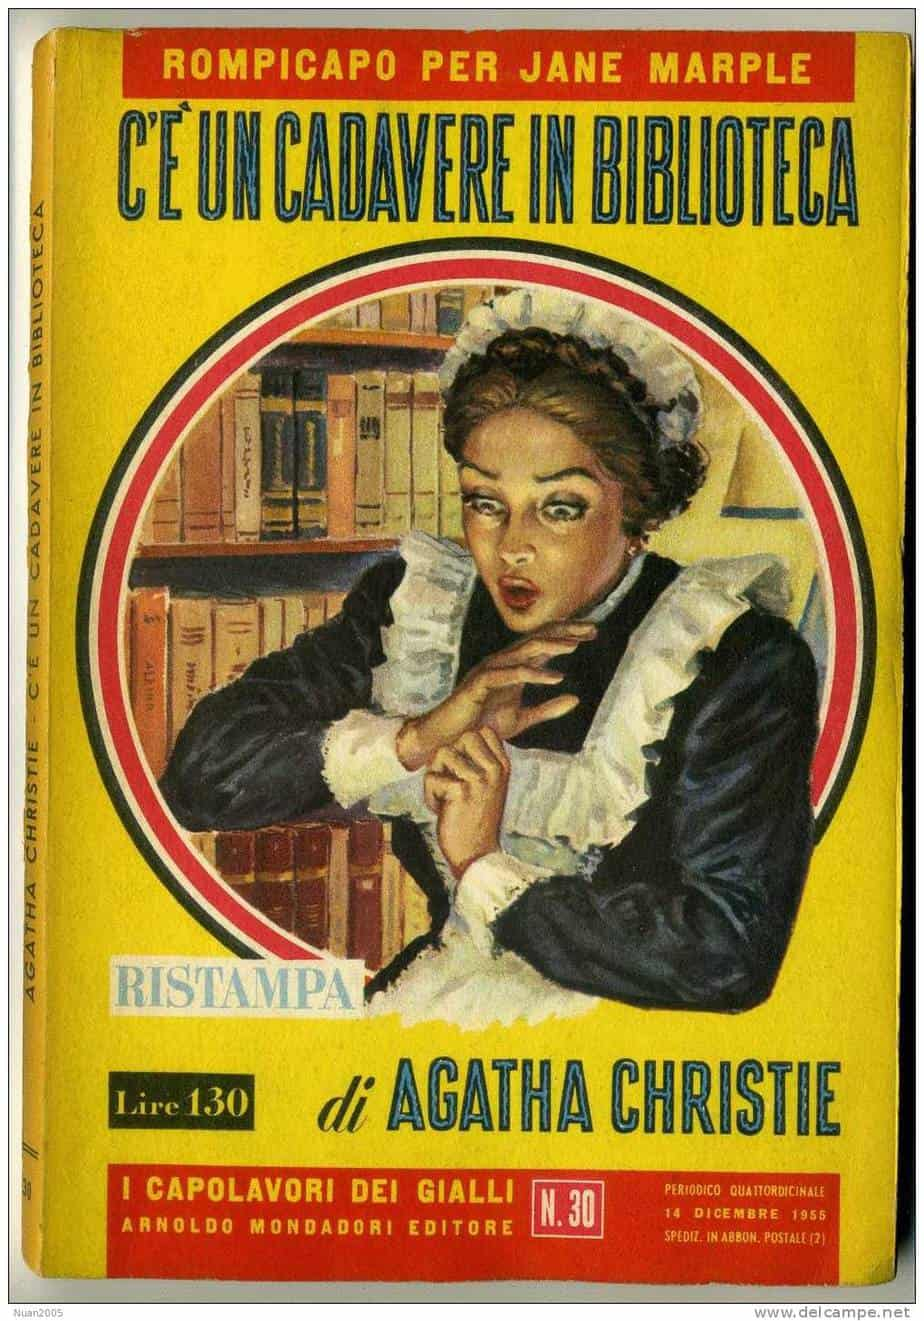 """an analysis of the mystery genre by agatha christie Critical reception the world's best-selling mystery writer, and often referred to as the """"queen of crime"""", agatha christie is considered a master of suspense, plotting, and characterisation some critics however regarded christie's plotting abilities as considerably exceeding her literary ones."""